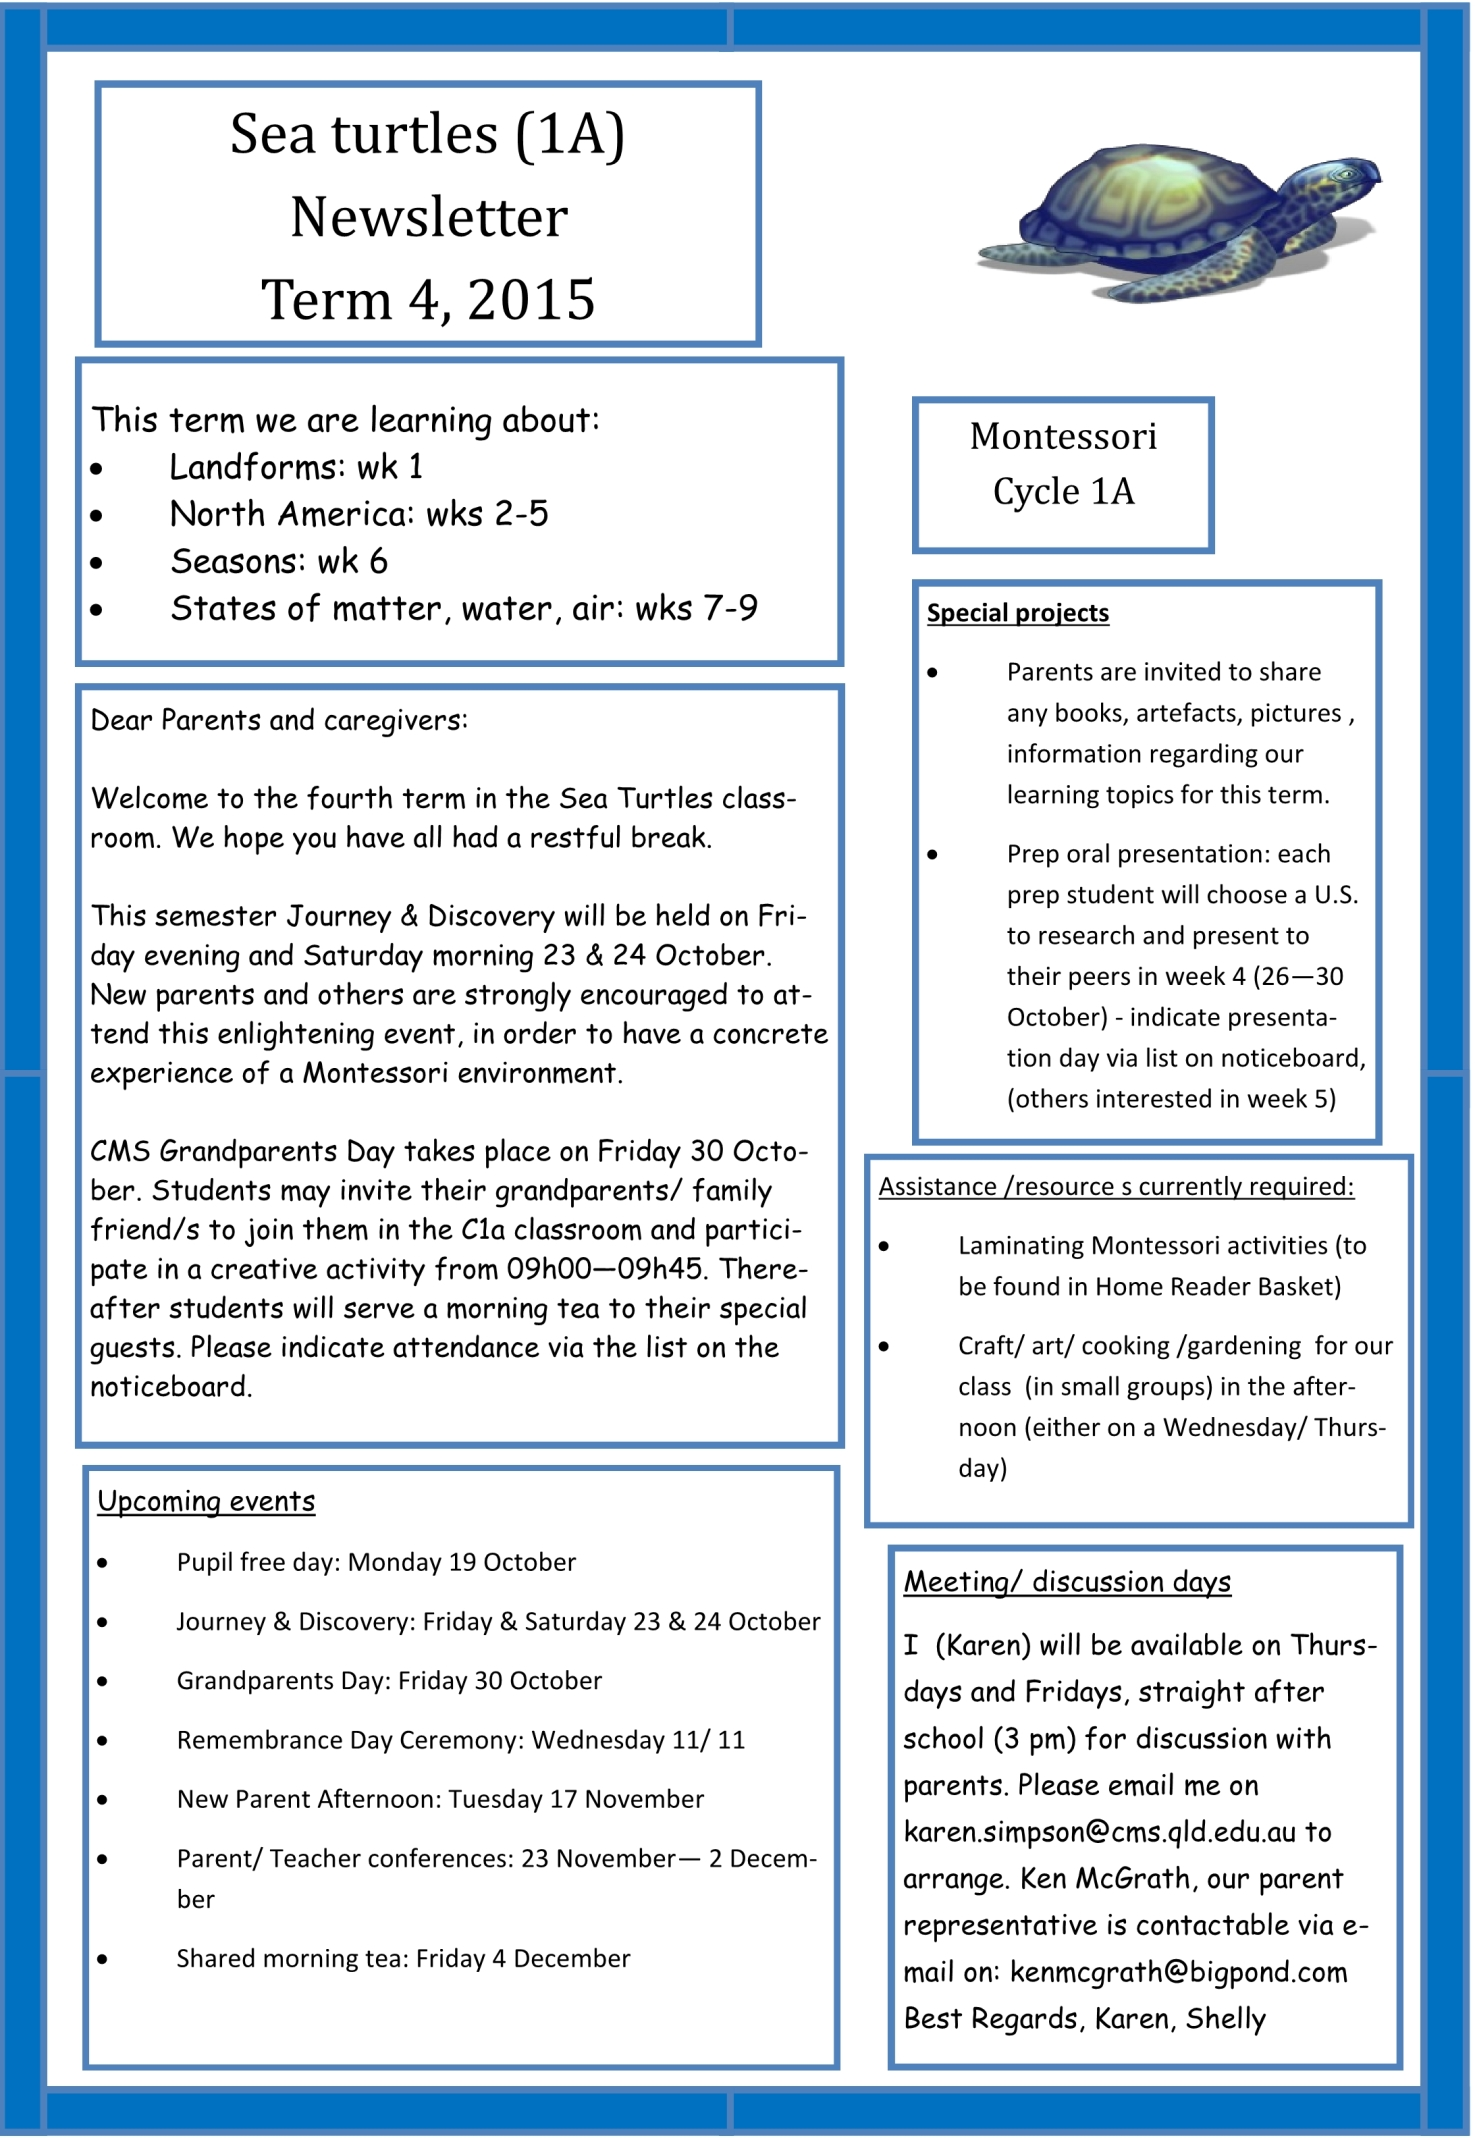 Newsletter Term 4